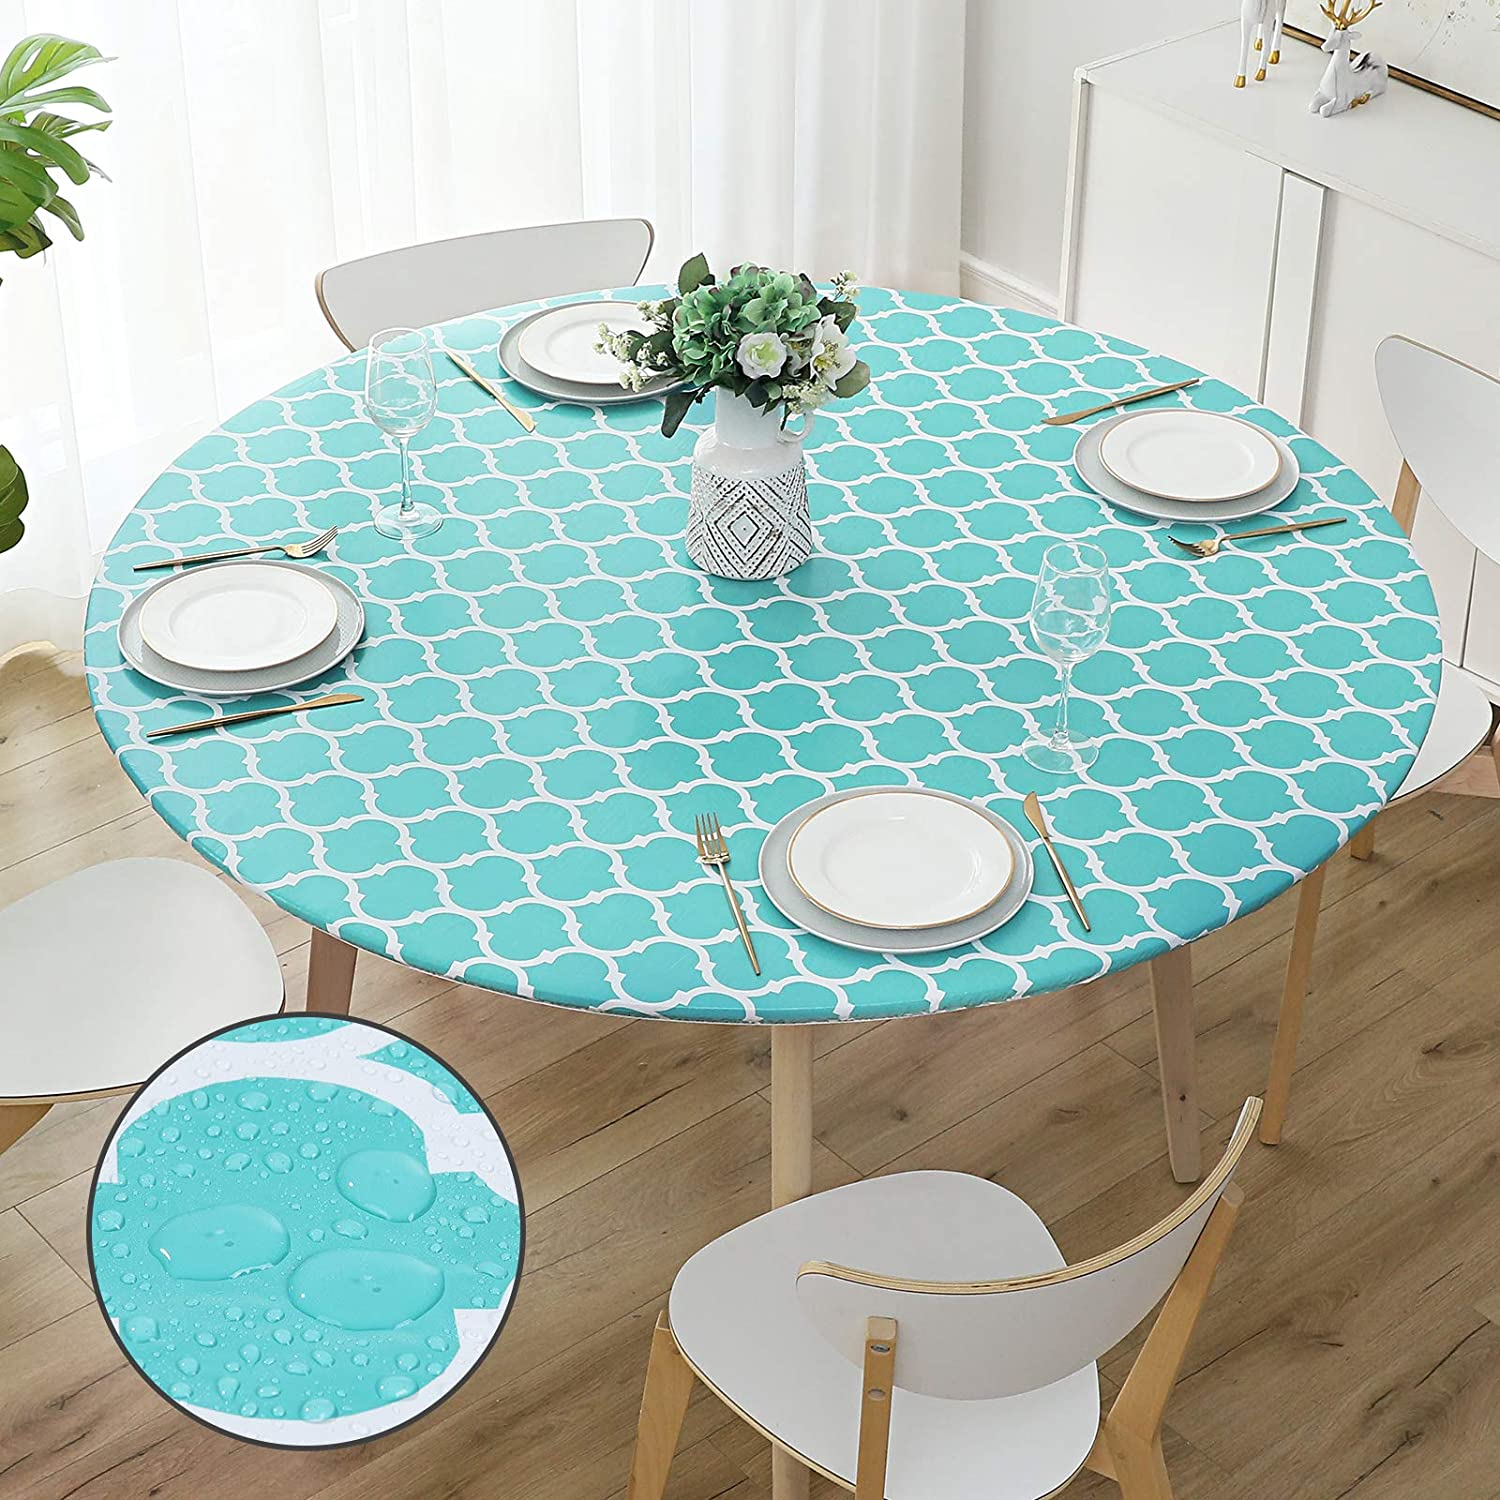 smiry Round Table Cloth Cover - Elastic Edged Flannel Backed Vinyl Tablecloth, Waterproof Wipeable Teal Moroccan Trellis Pattern Table Cover for Outdoor Indoor Room